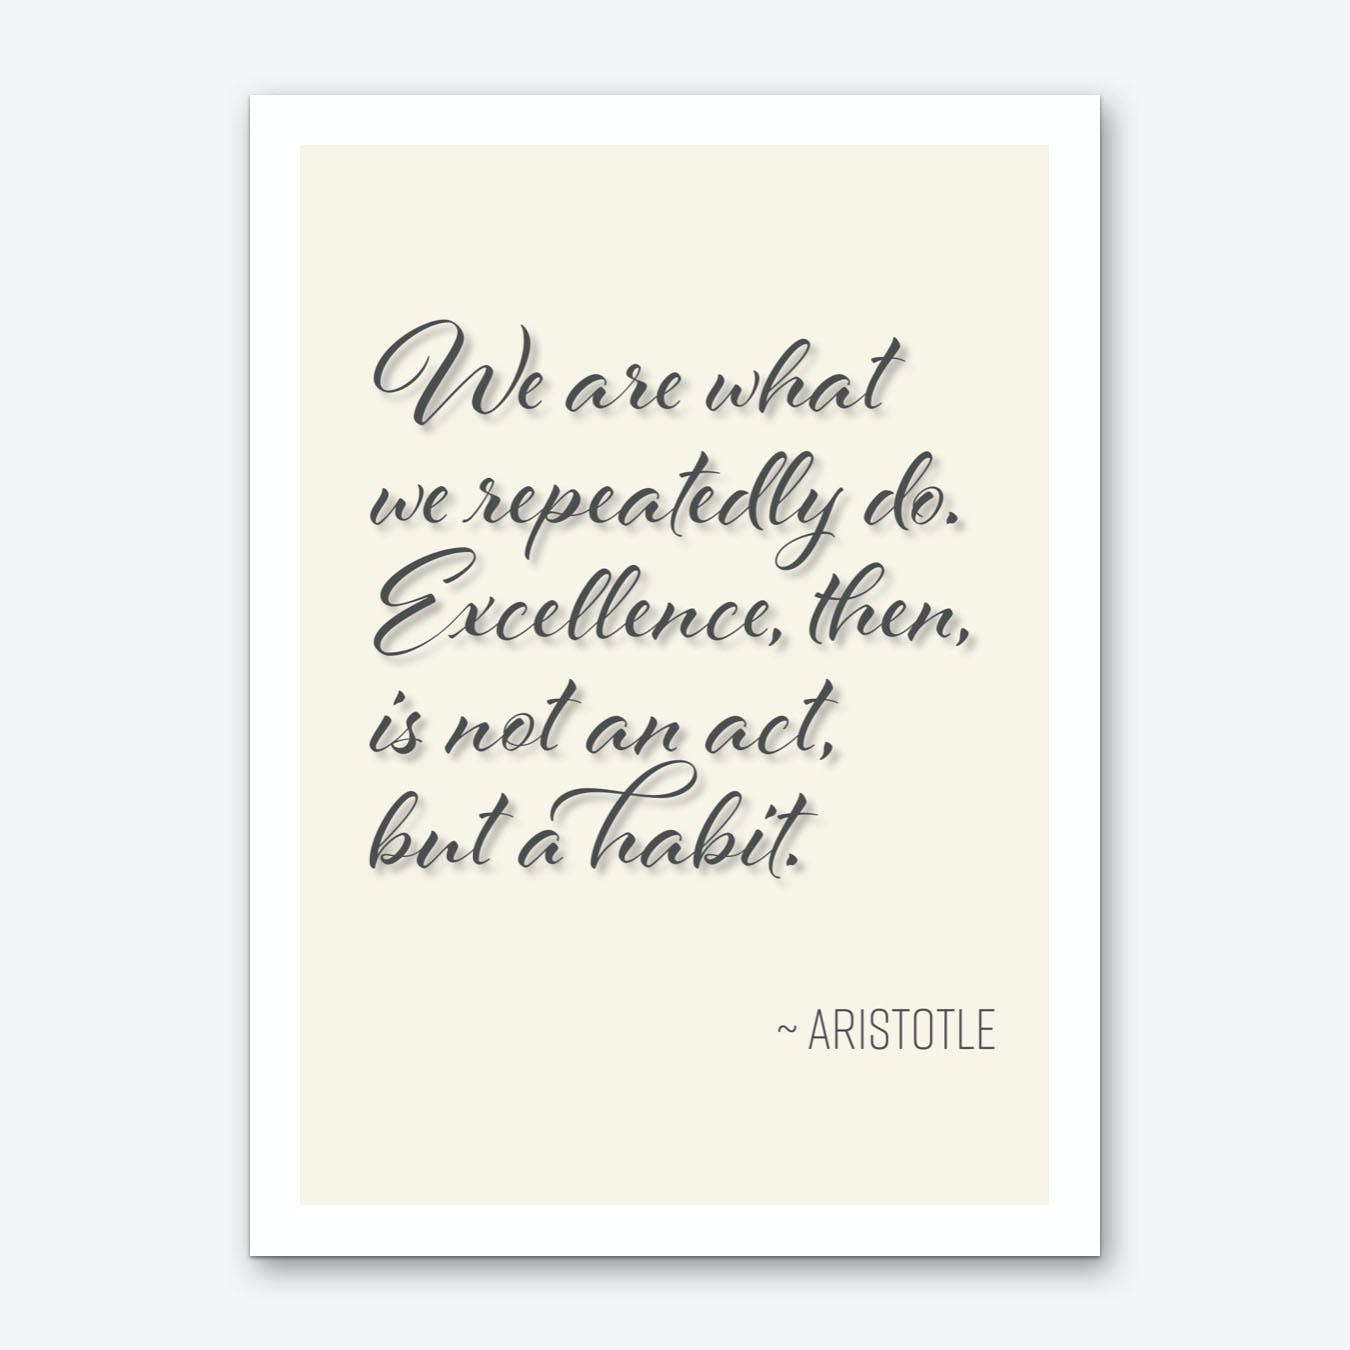 Aristotle Quote on Excellence Art Print